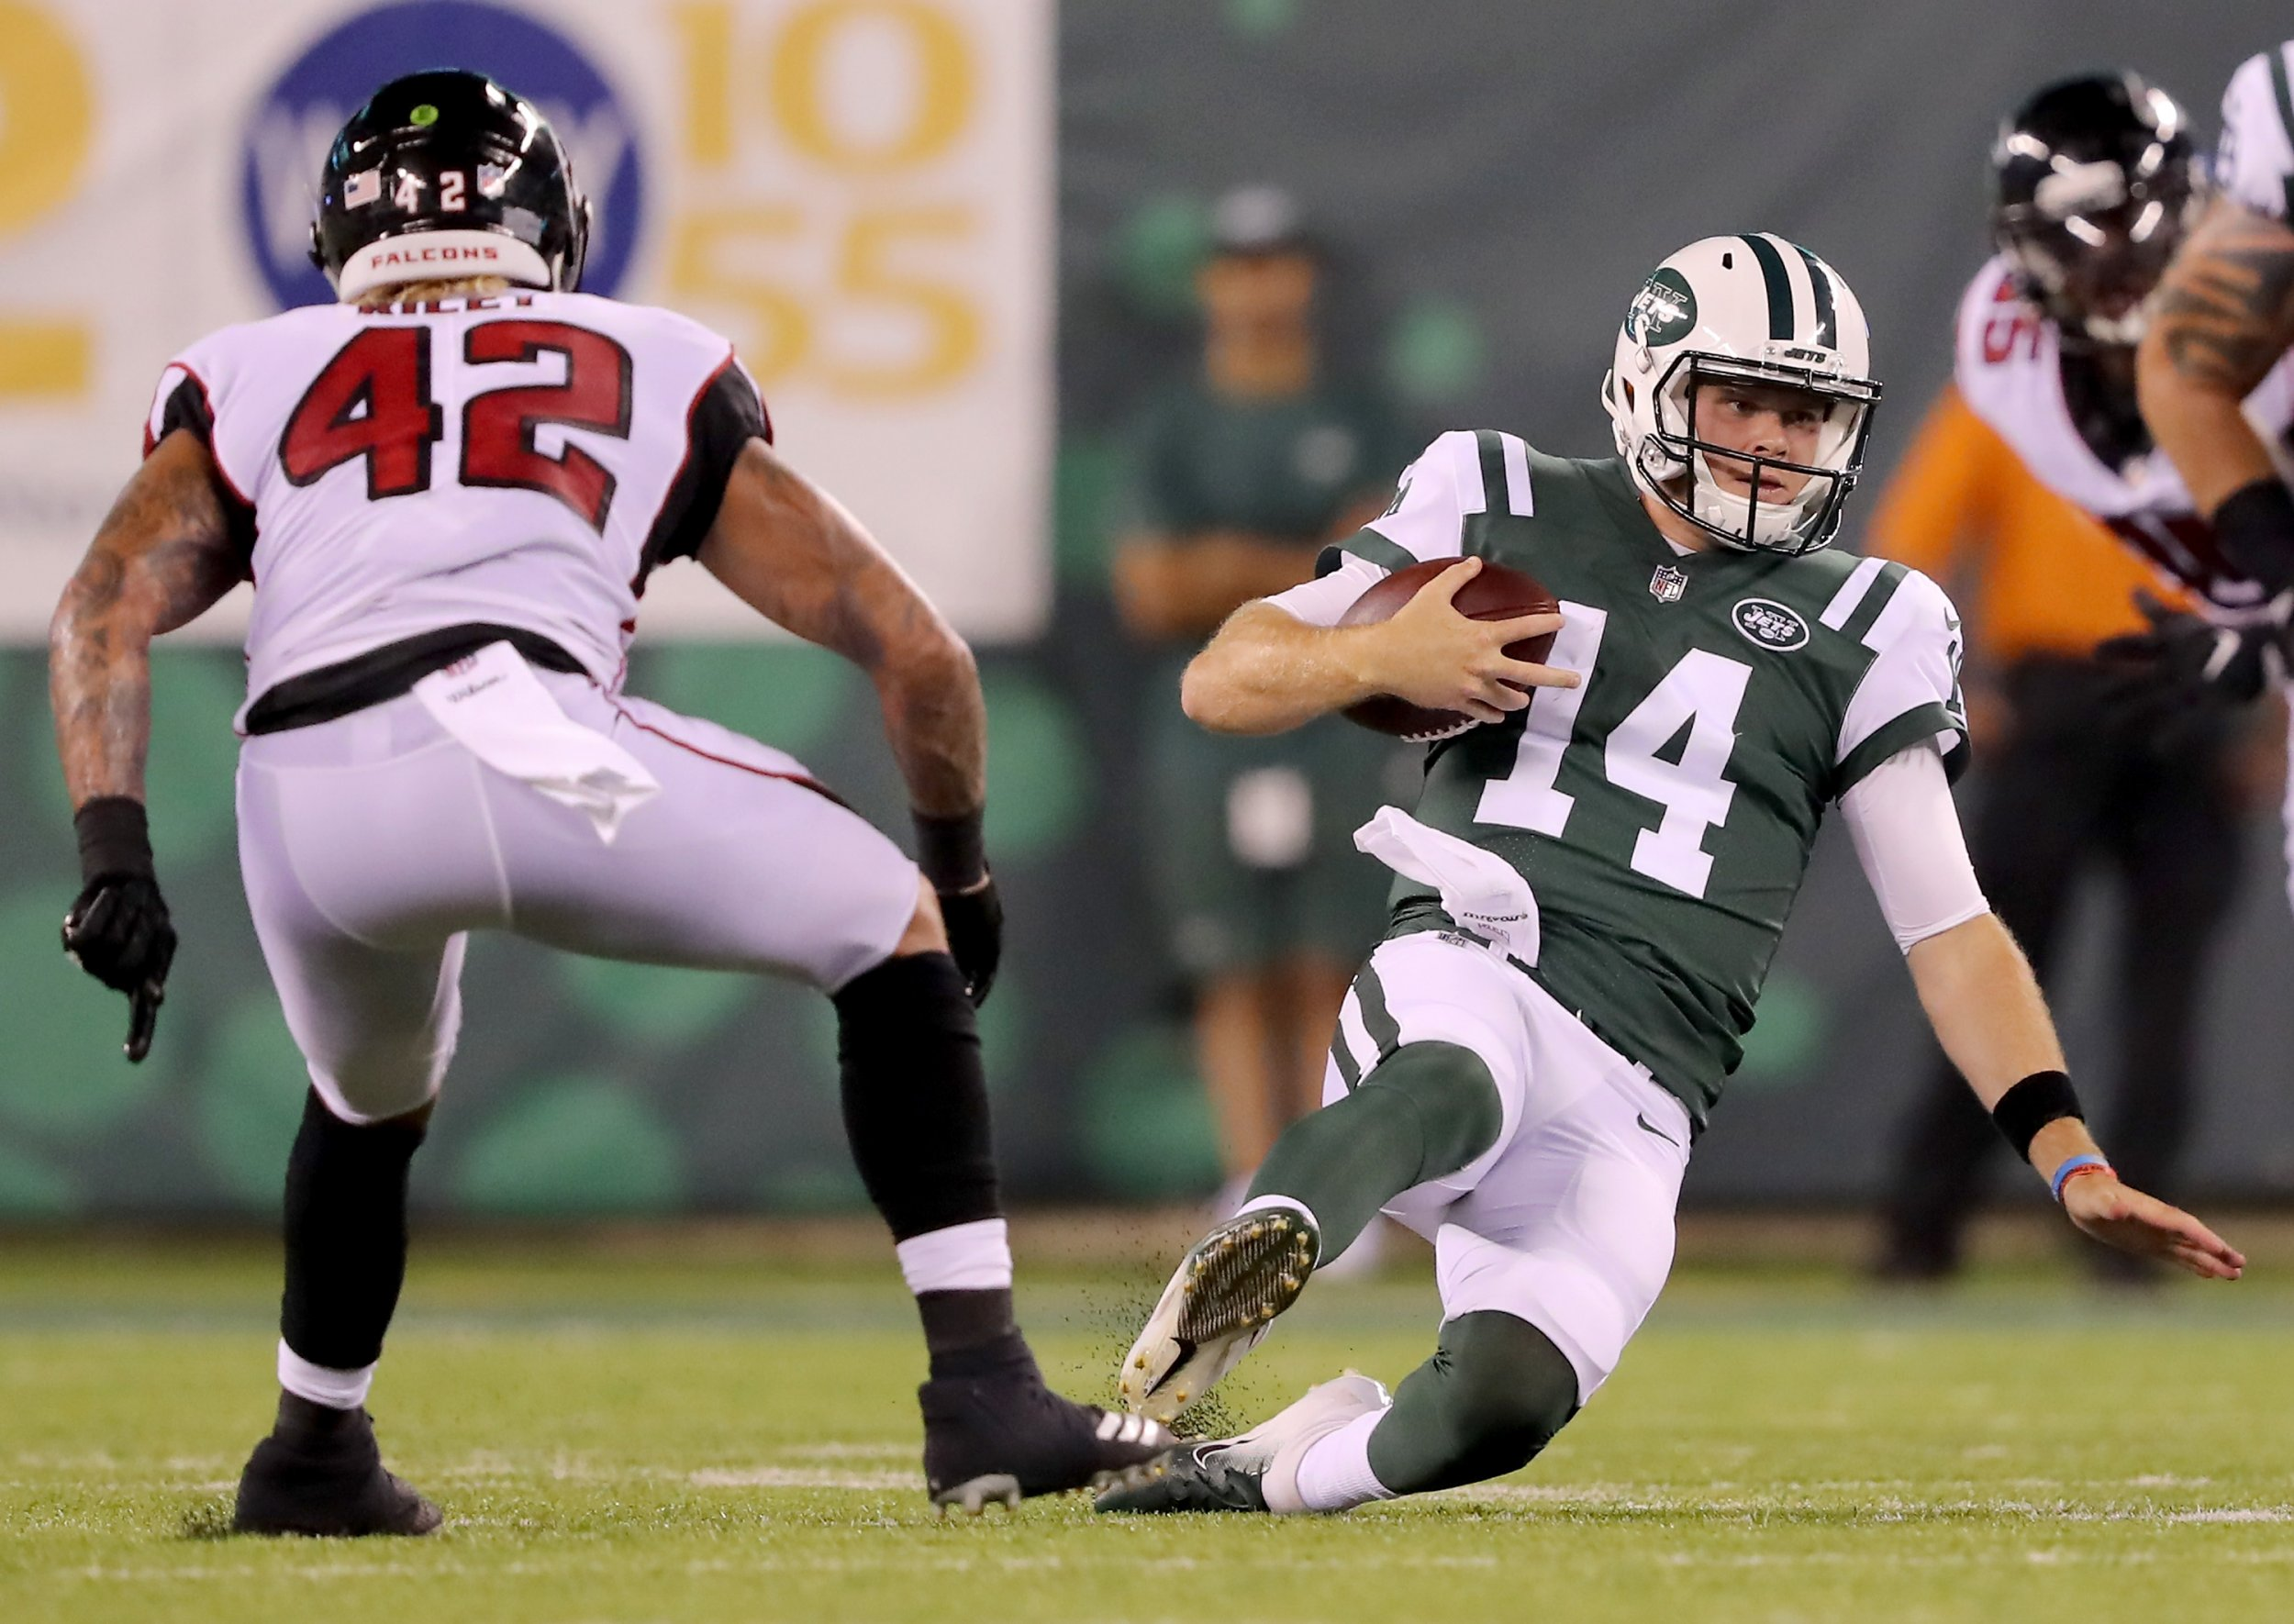 official photos c7625 c3245 Will Sam Darnold Be the Jets Starting QB This Season? No. 3 ...